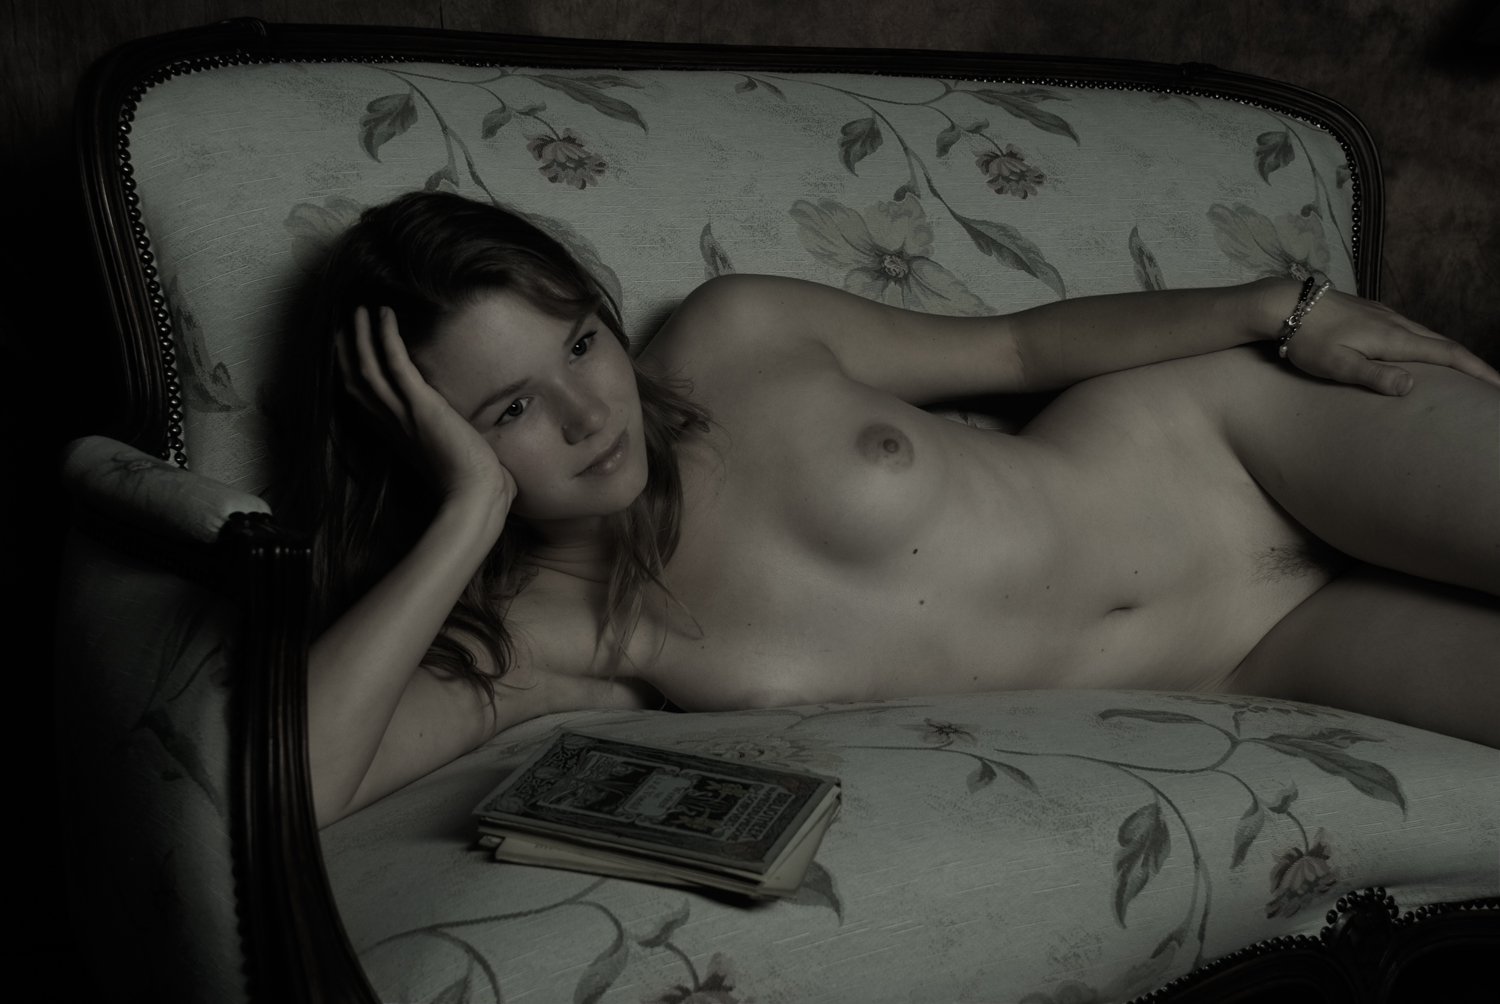 Nude on sofa